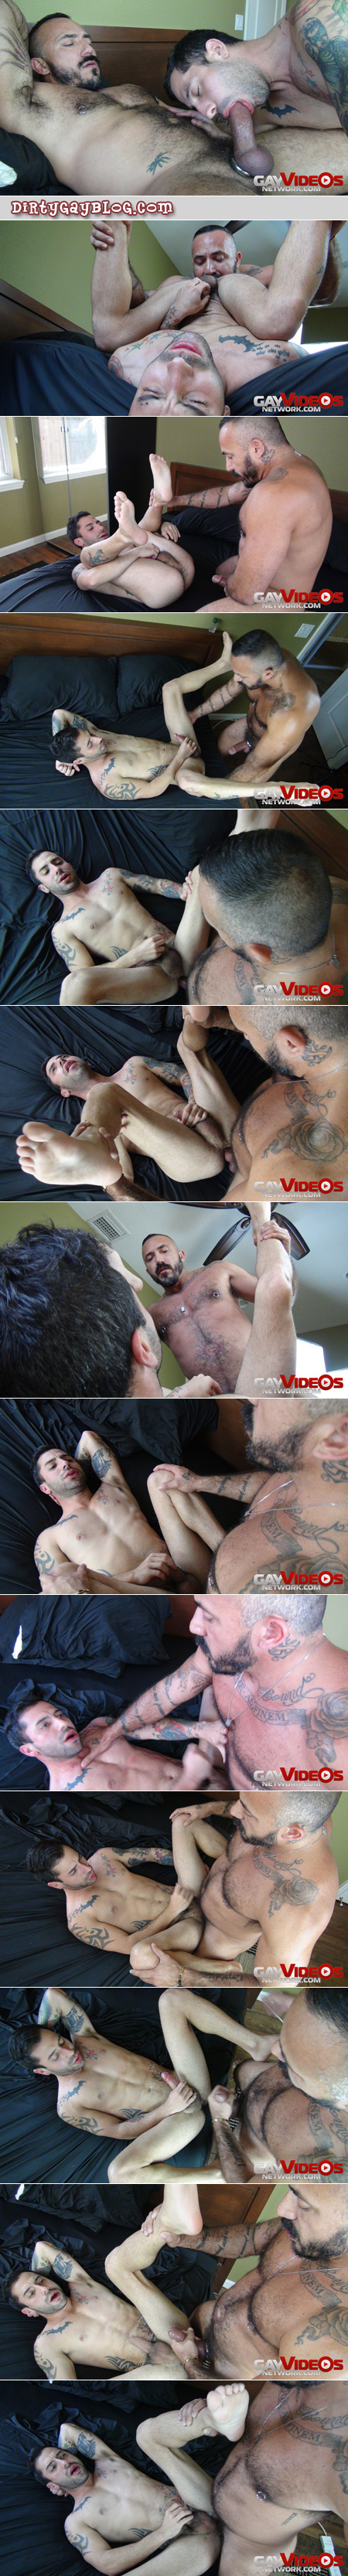 Hairy Daddy fucking a younger tattooed guy bareback and breeding his ass.